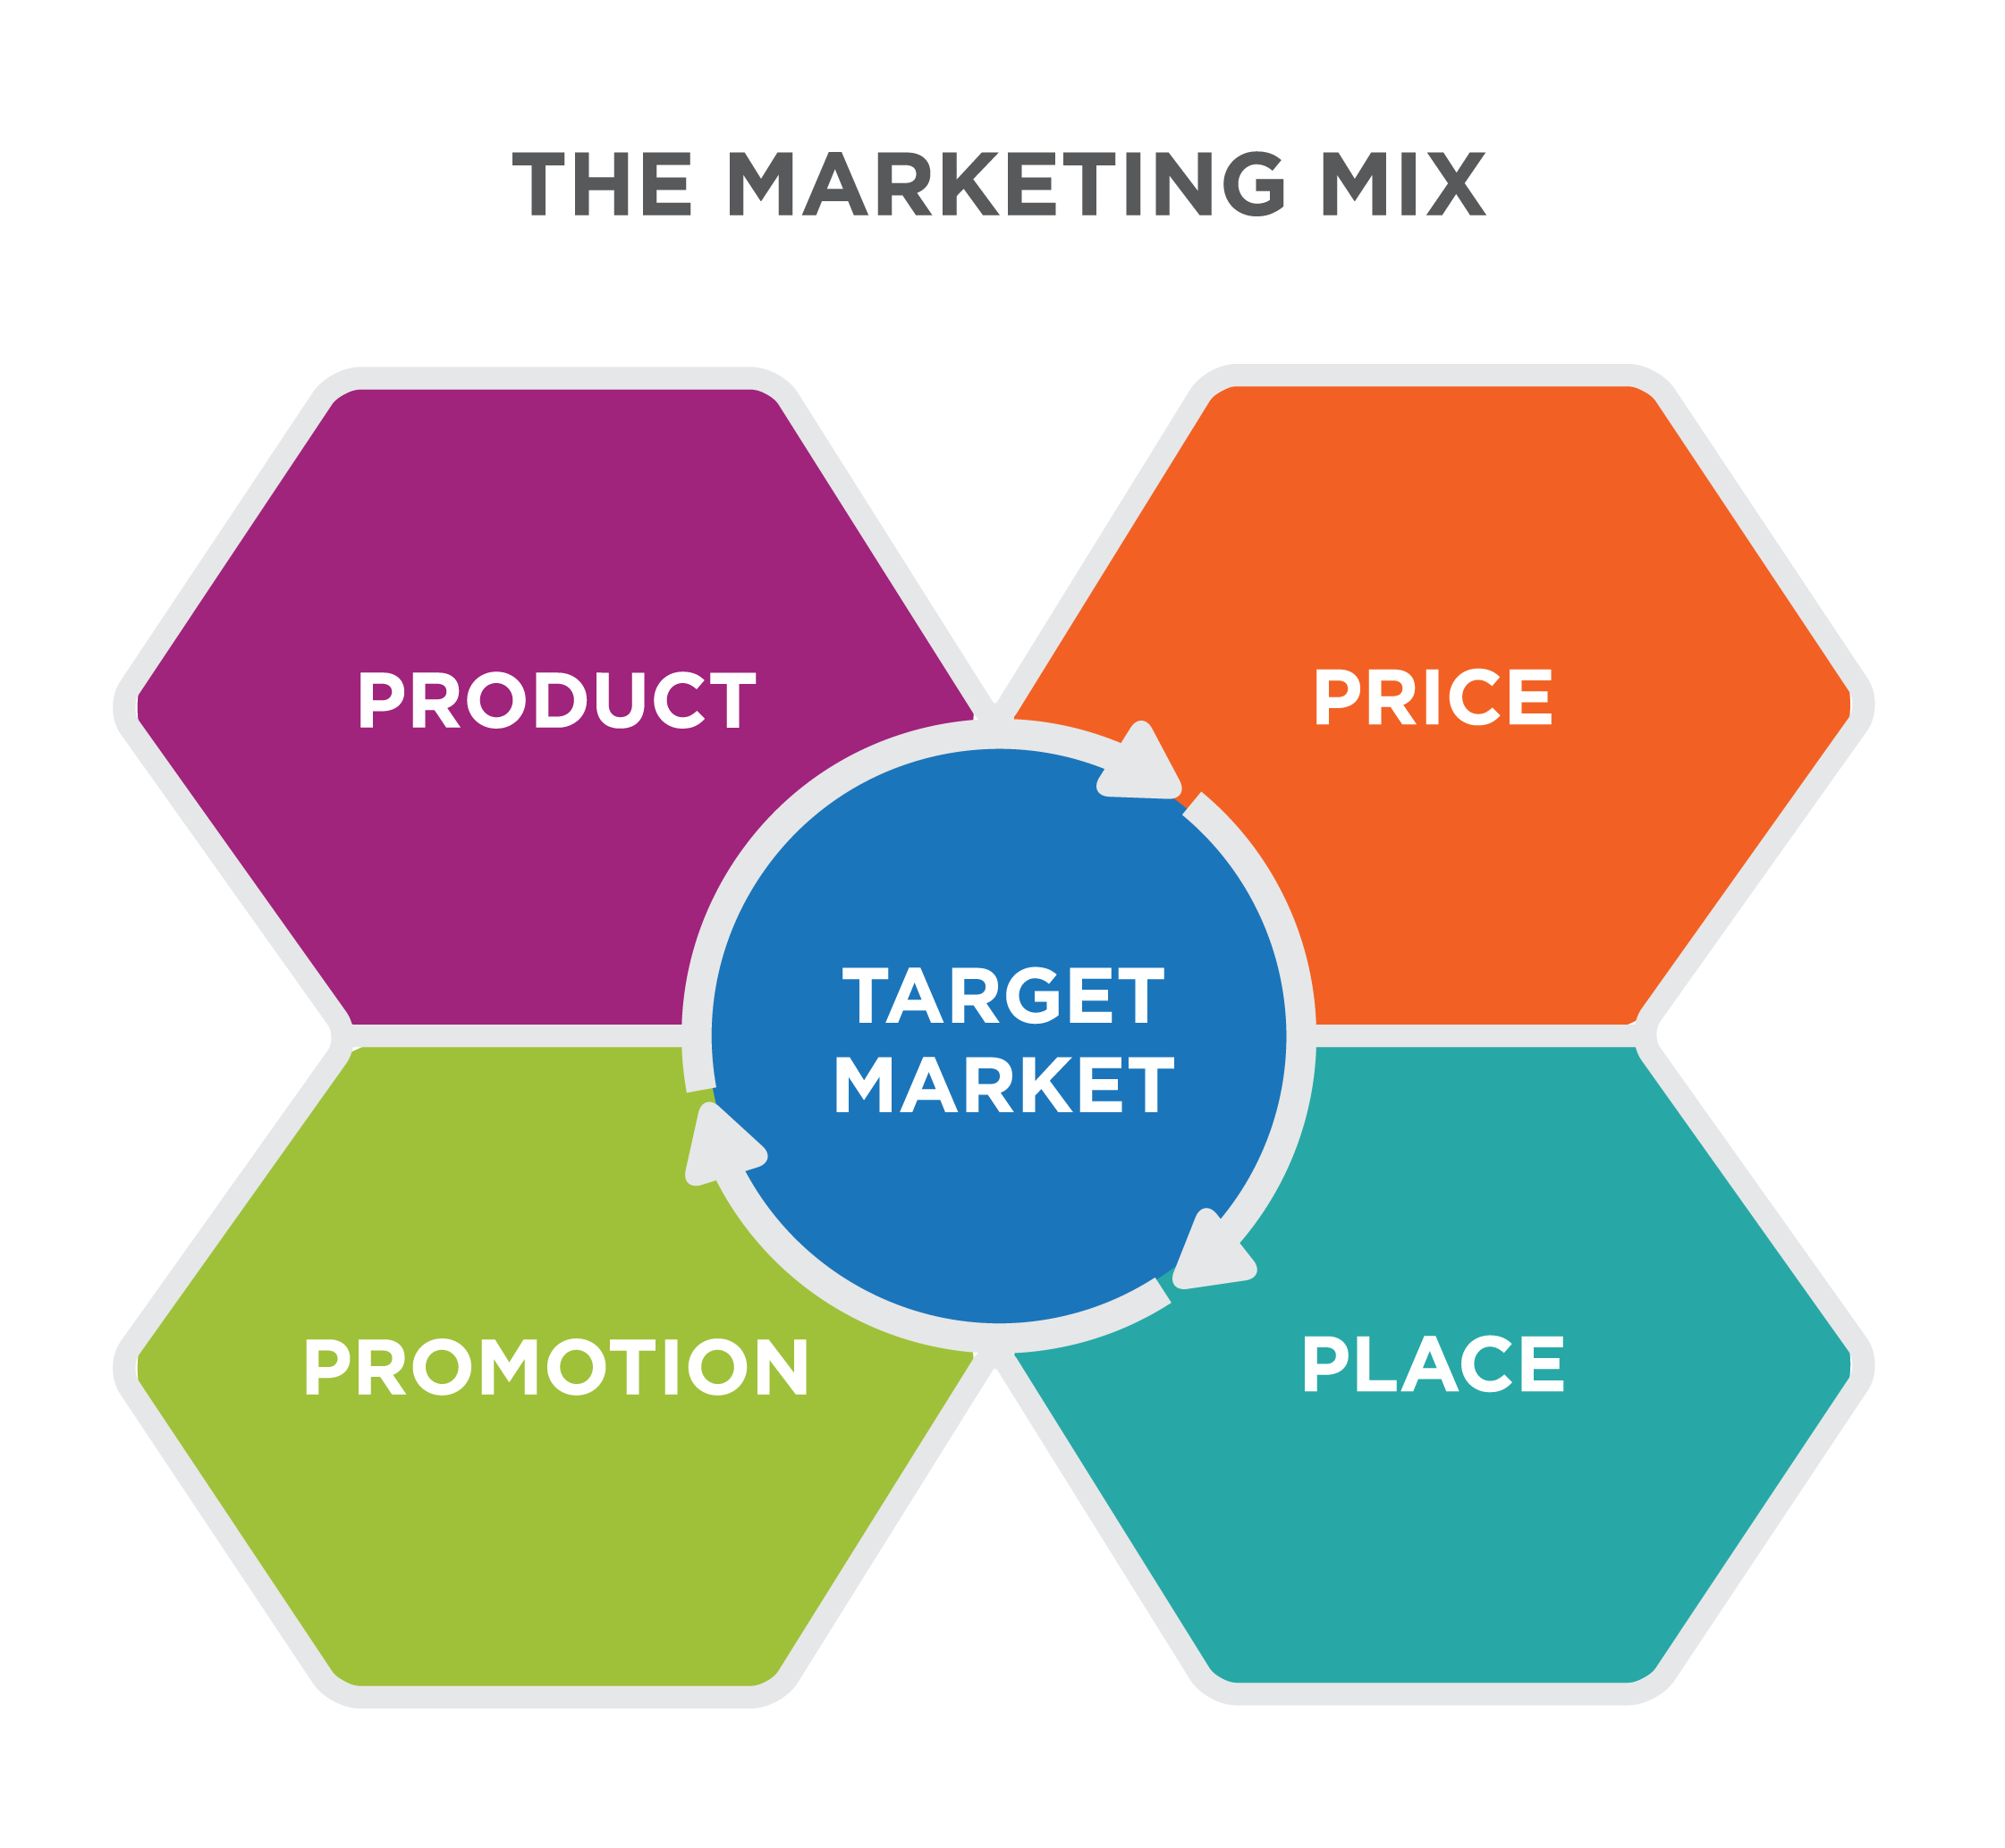 The_Marketing_Mix_1.png